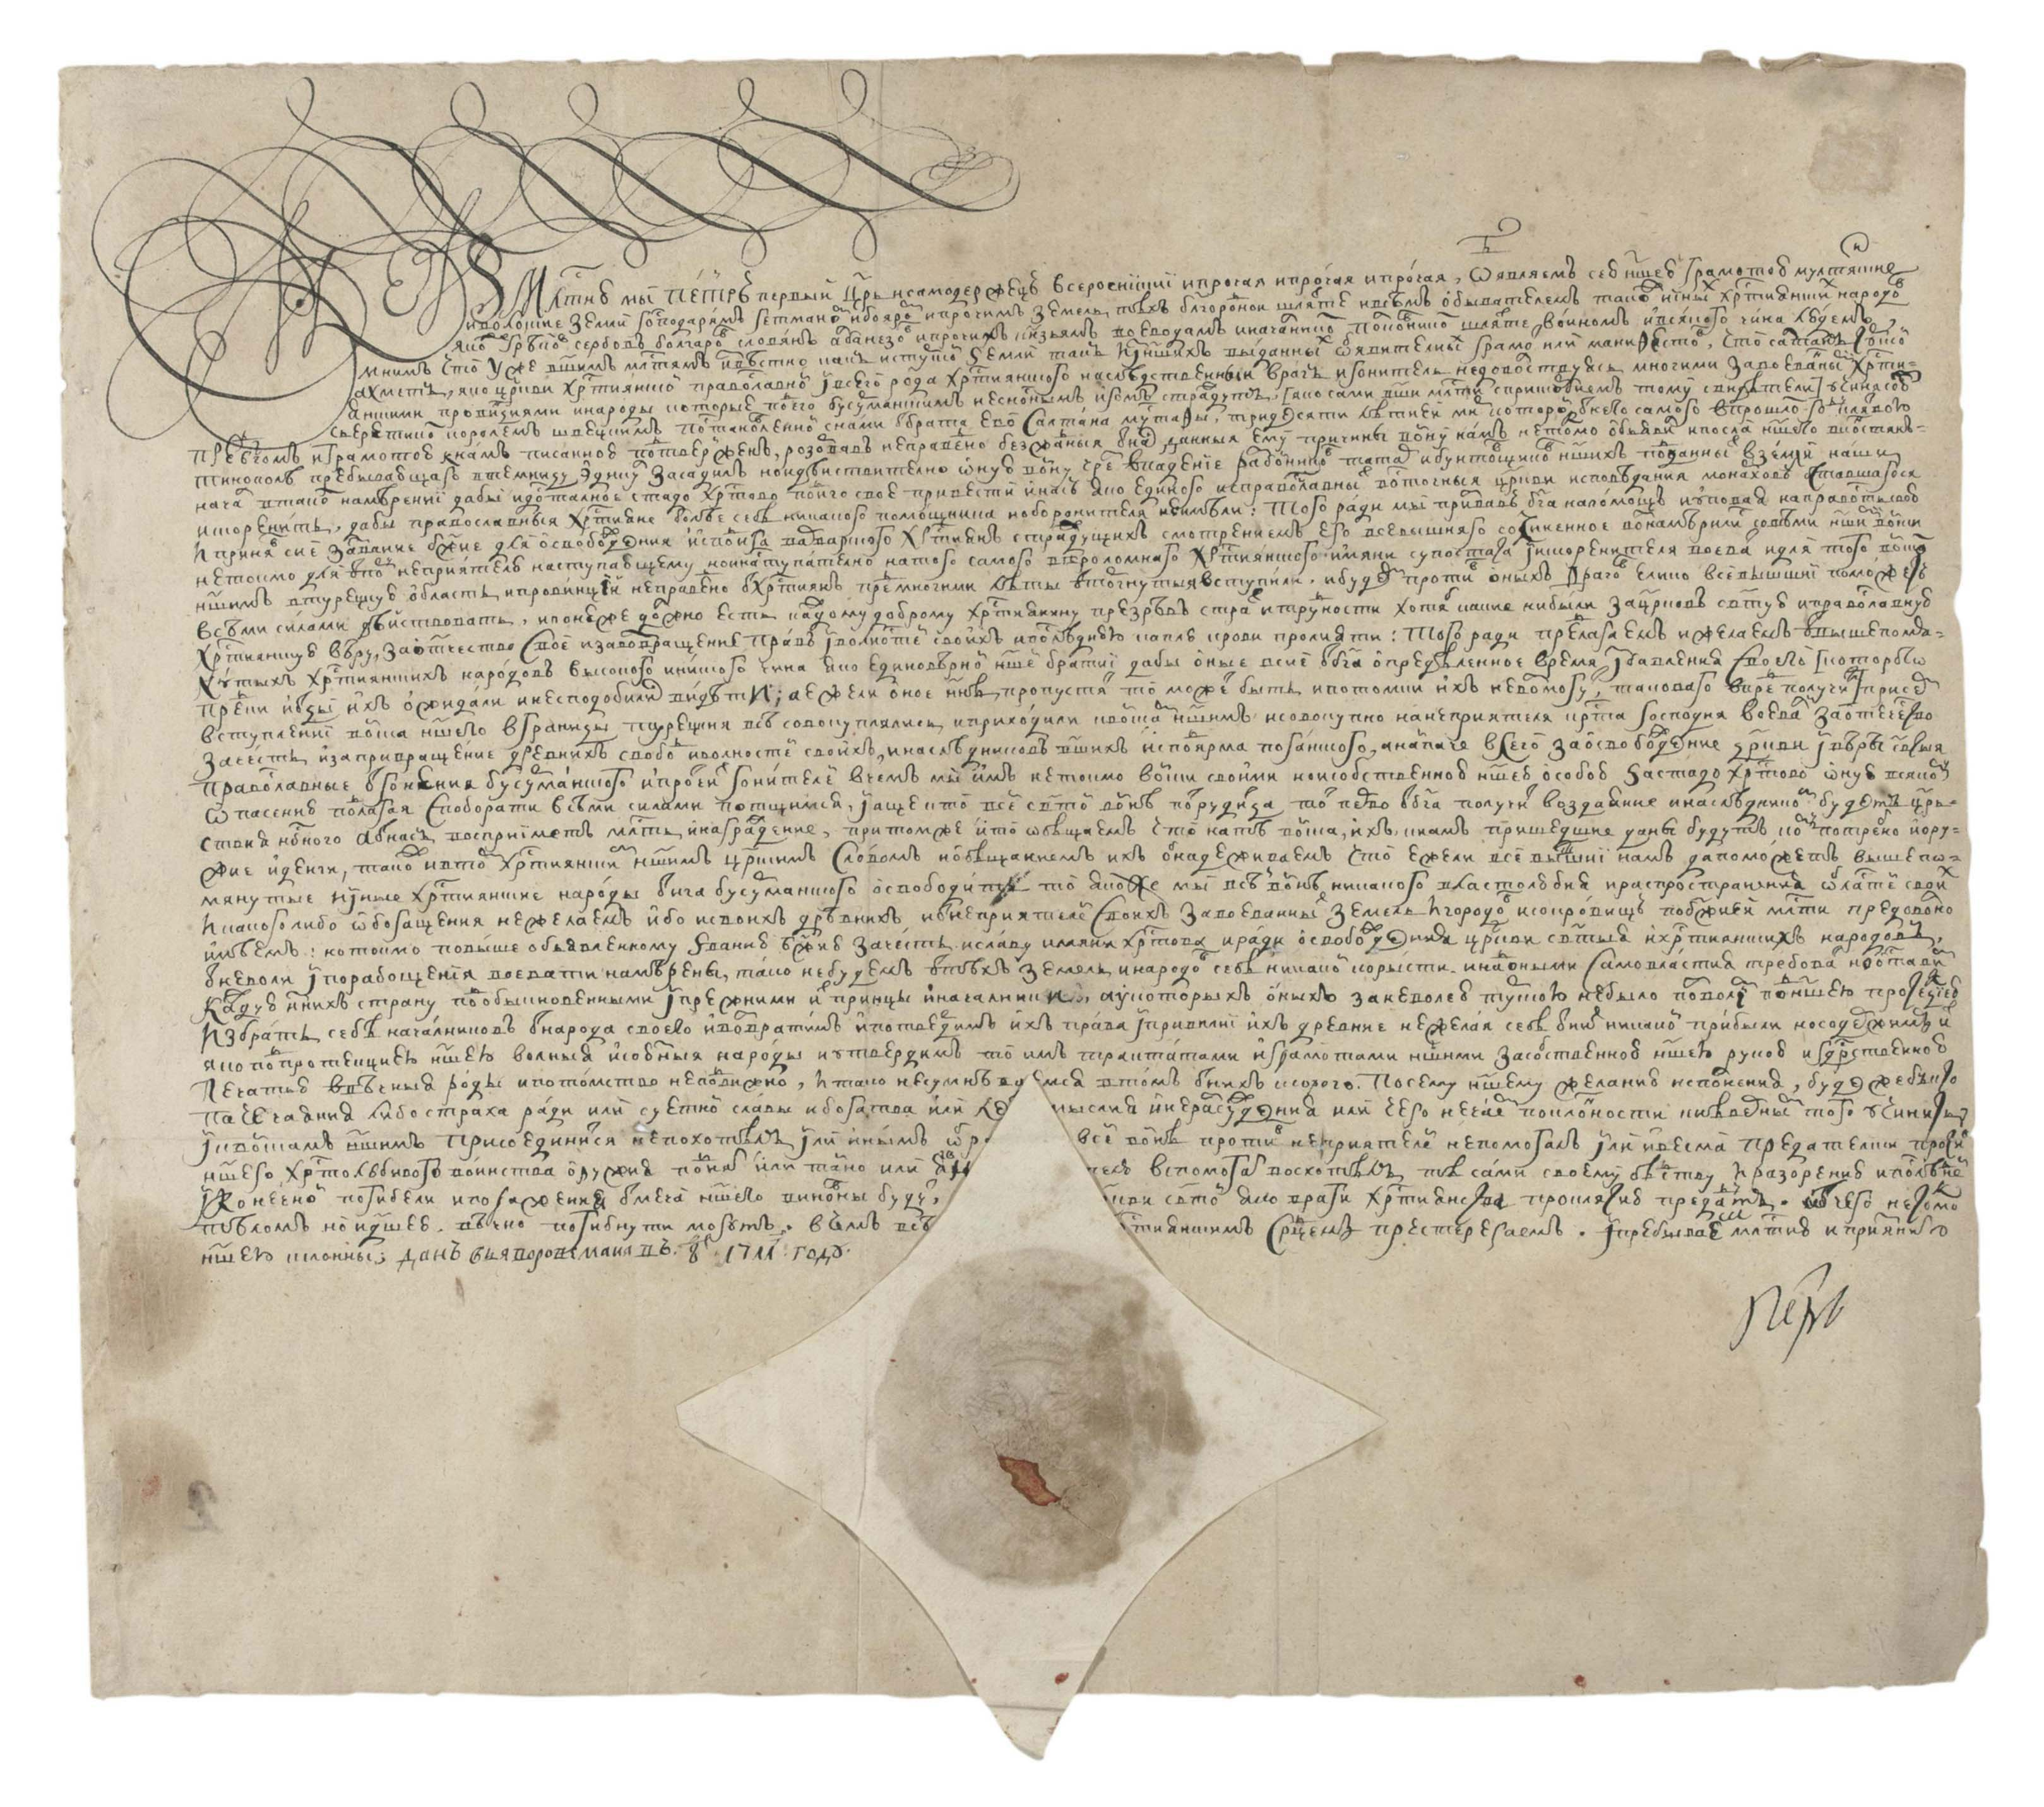 PETER I, THE GREAT (1672-1725), Tsar of Russia. Document signed ('Petr', in Cyrillic) to the inhabitants of Moldavia and Wallachia and all Christian peoples, Iavorov, 8 May 1711, in Russian, 38 lines on one page, oblong folio (320 x 380mm), inscribed 'No.2' on verso, papered seal (minor browning and wear).